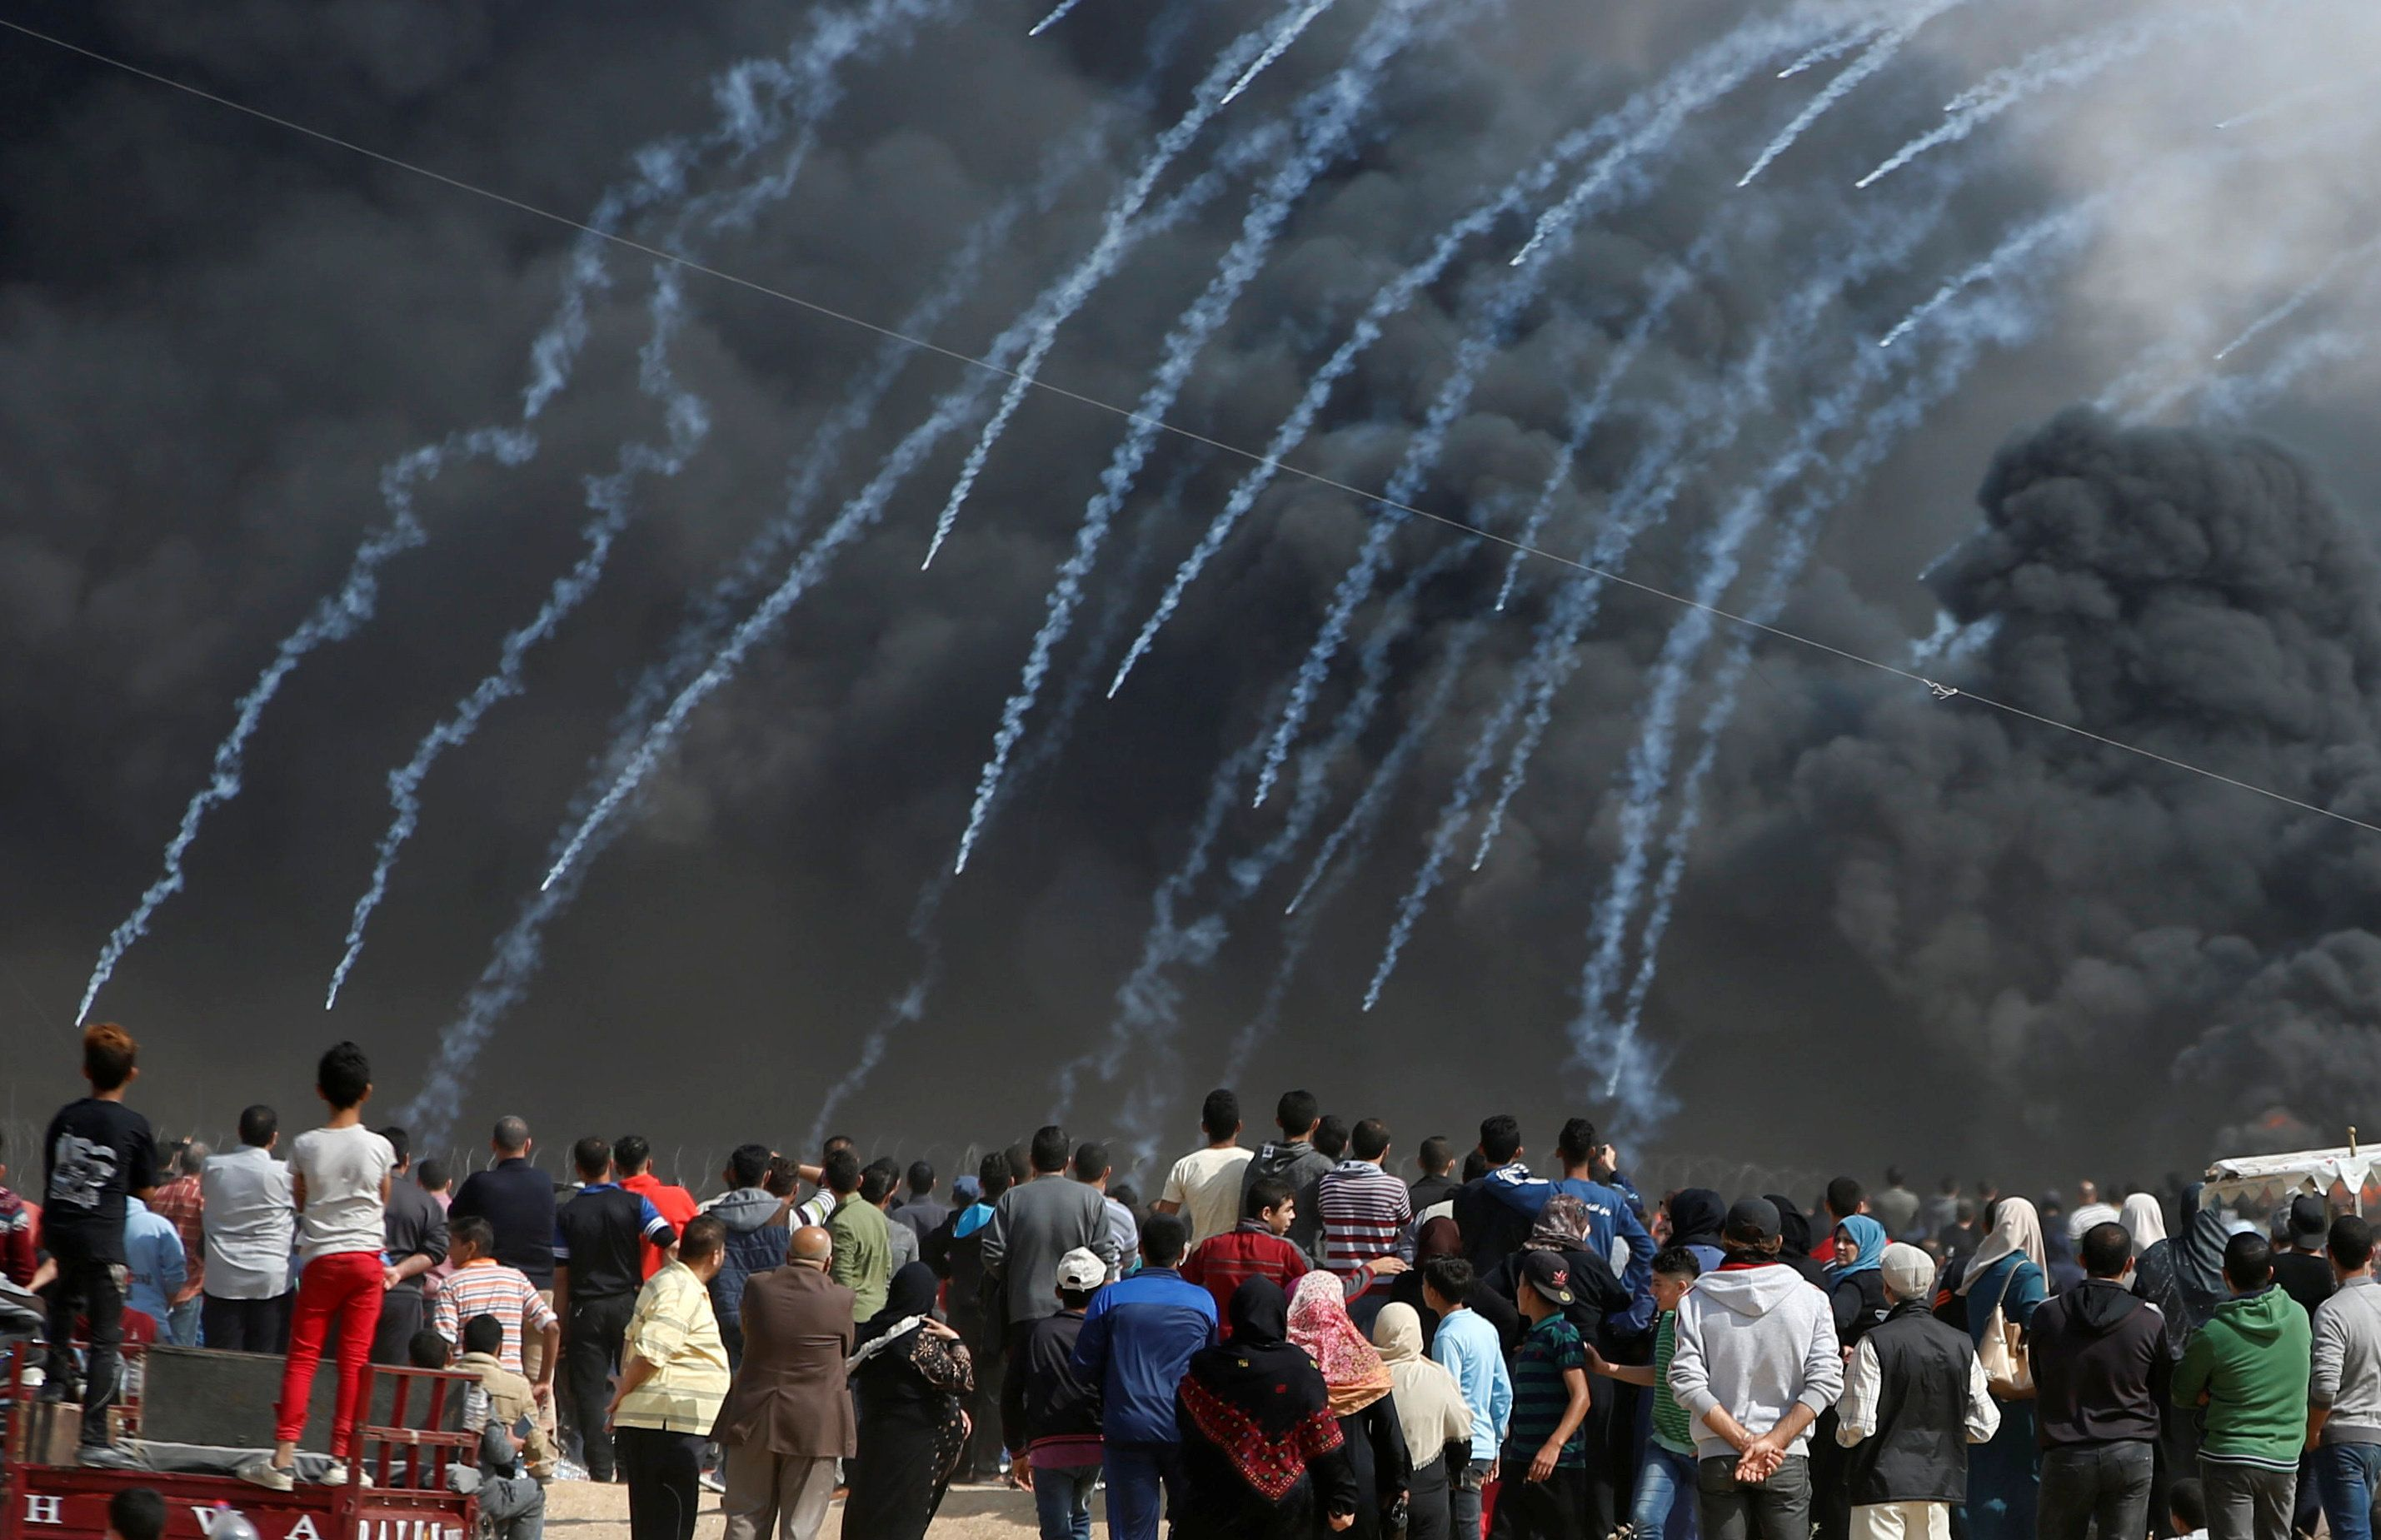 Tear gas canisters are fired by Israeli troops at Palestinian demonstrators during clashes at a protest demanding the right to return to their homeland, at the Israel-Gaza border, east of Gaza City, April 27, 2018. REUTERS/Mohammed Salem